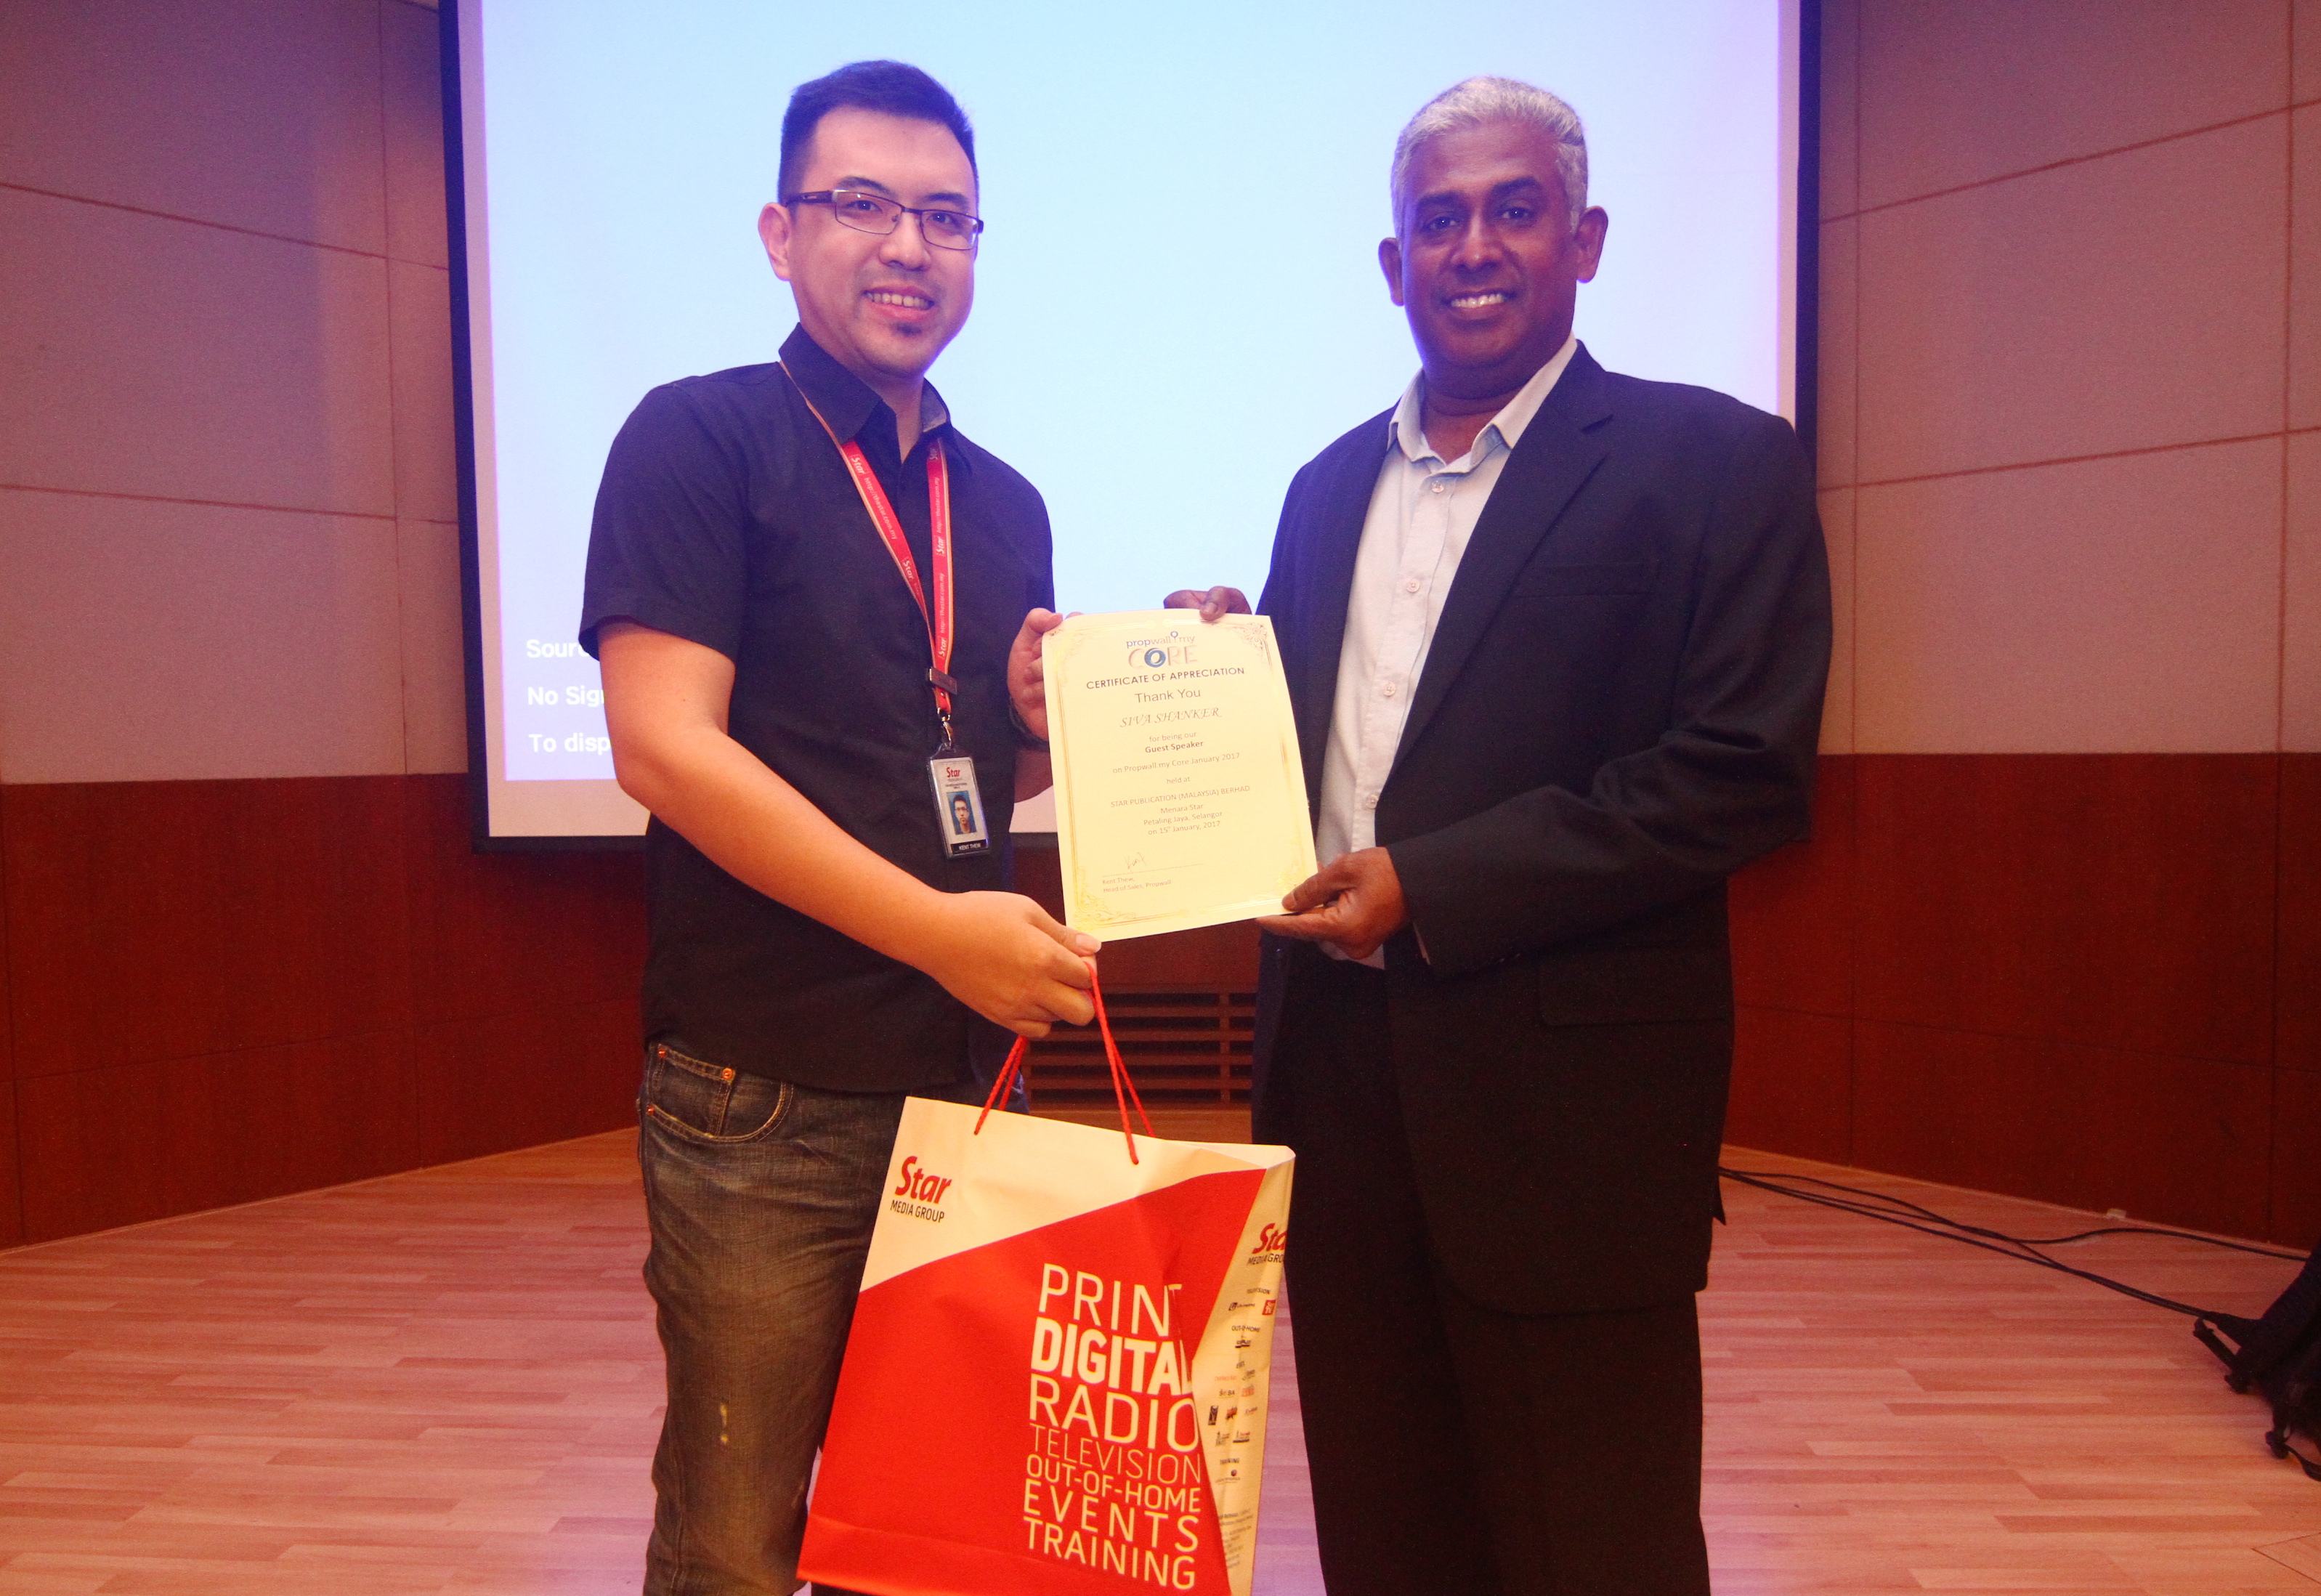 Propwall.my head of sales Thew Phang Chun presents token of appreciation to Siva Shanker.